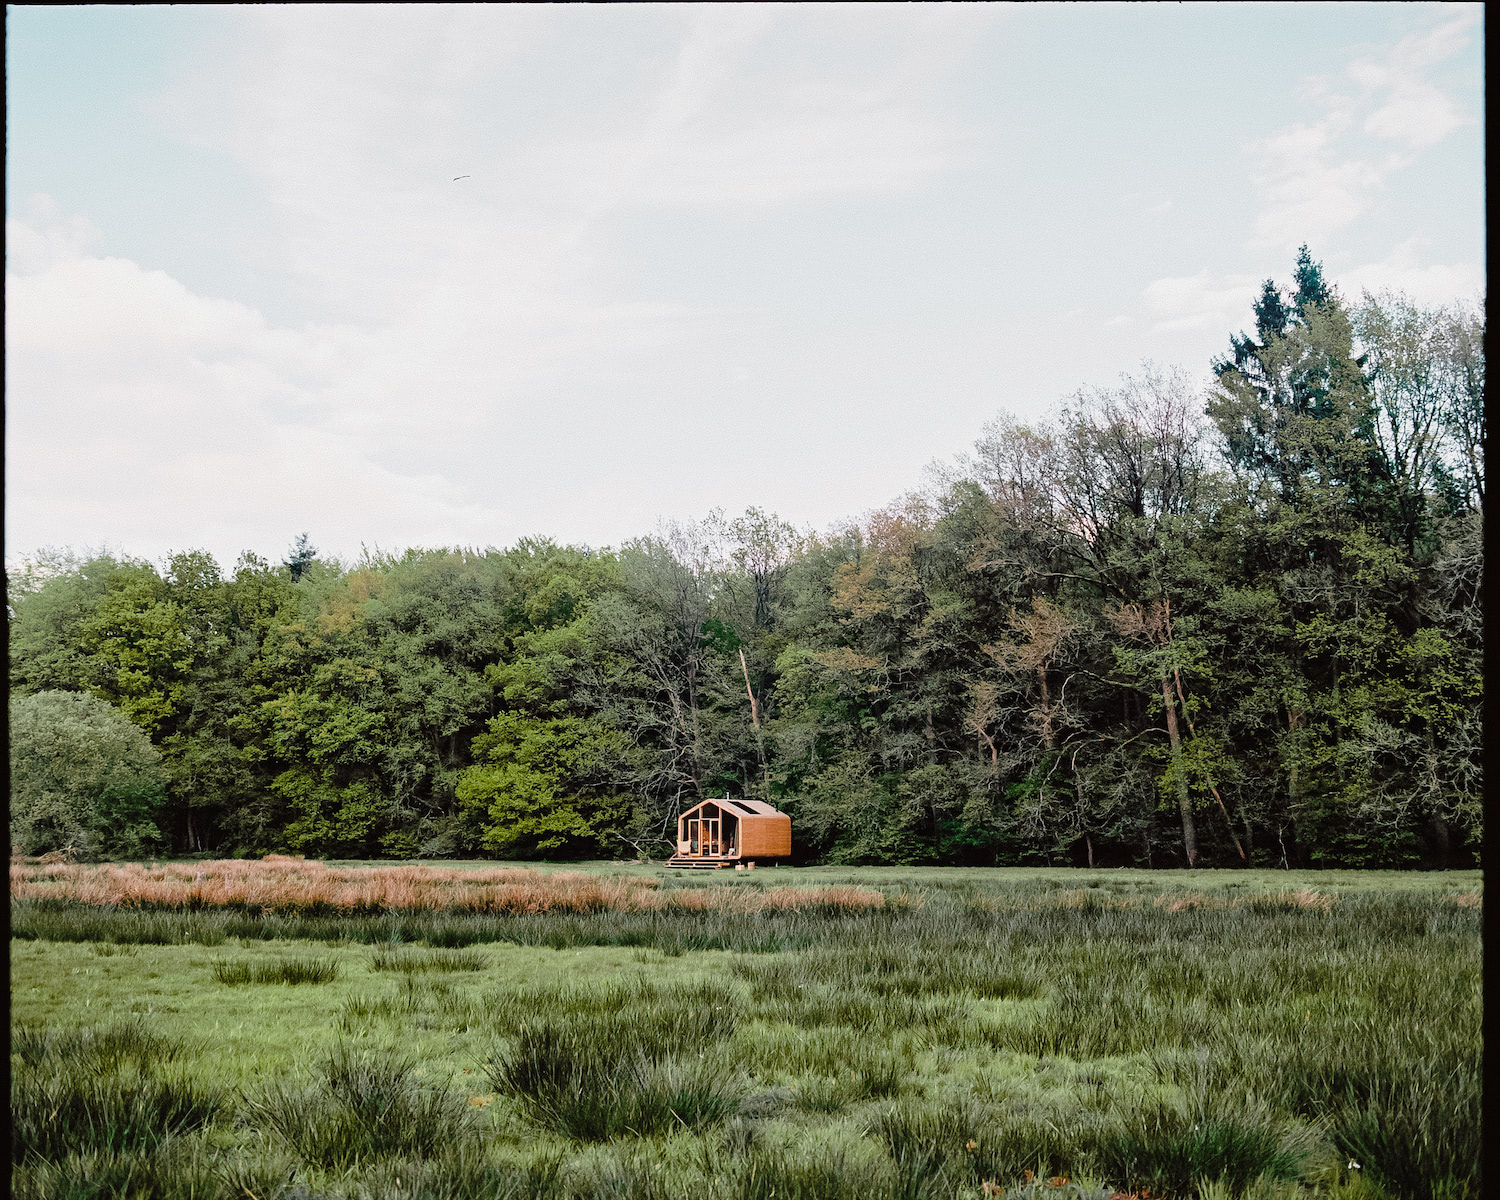 Cabiner: A cabin in the woods in the Netherlands